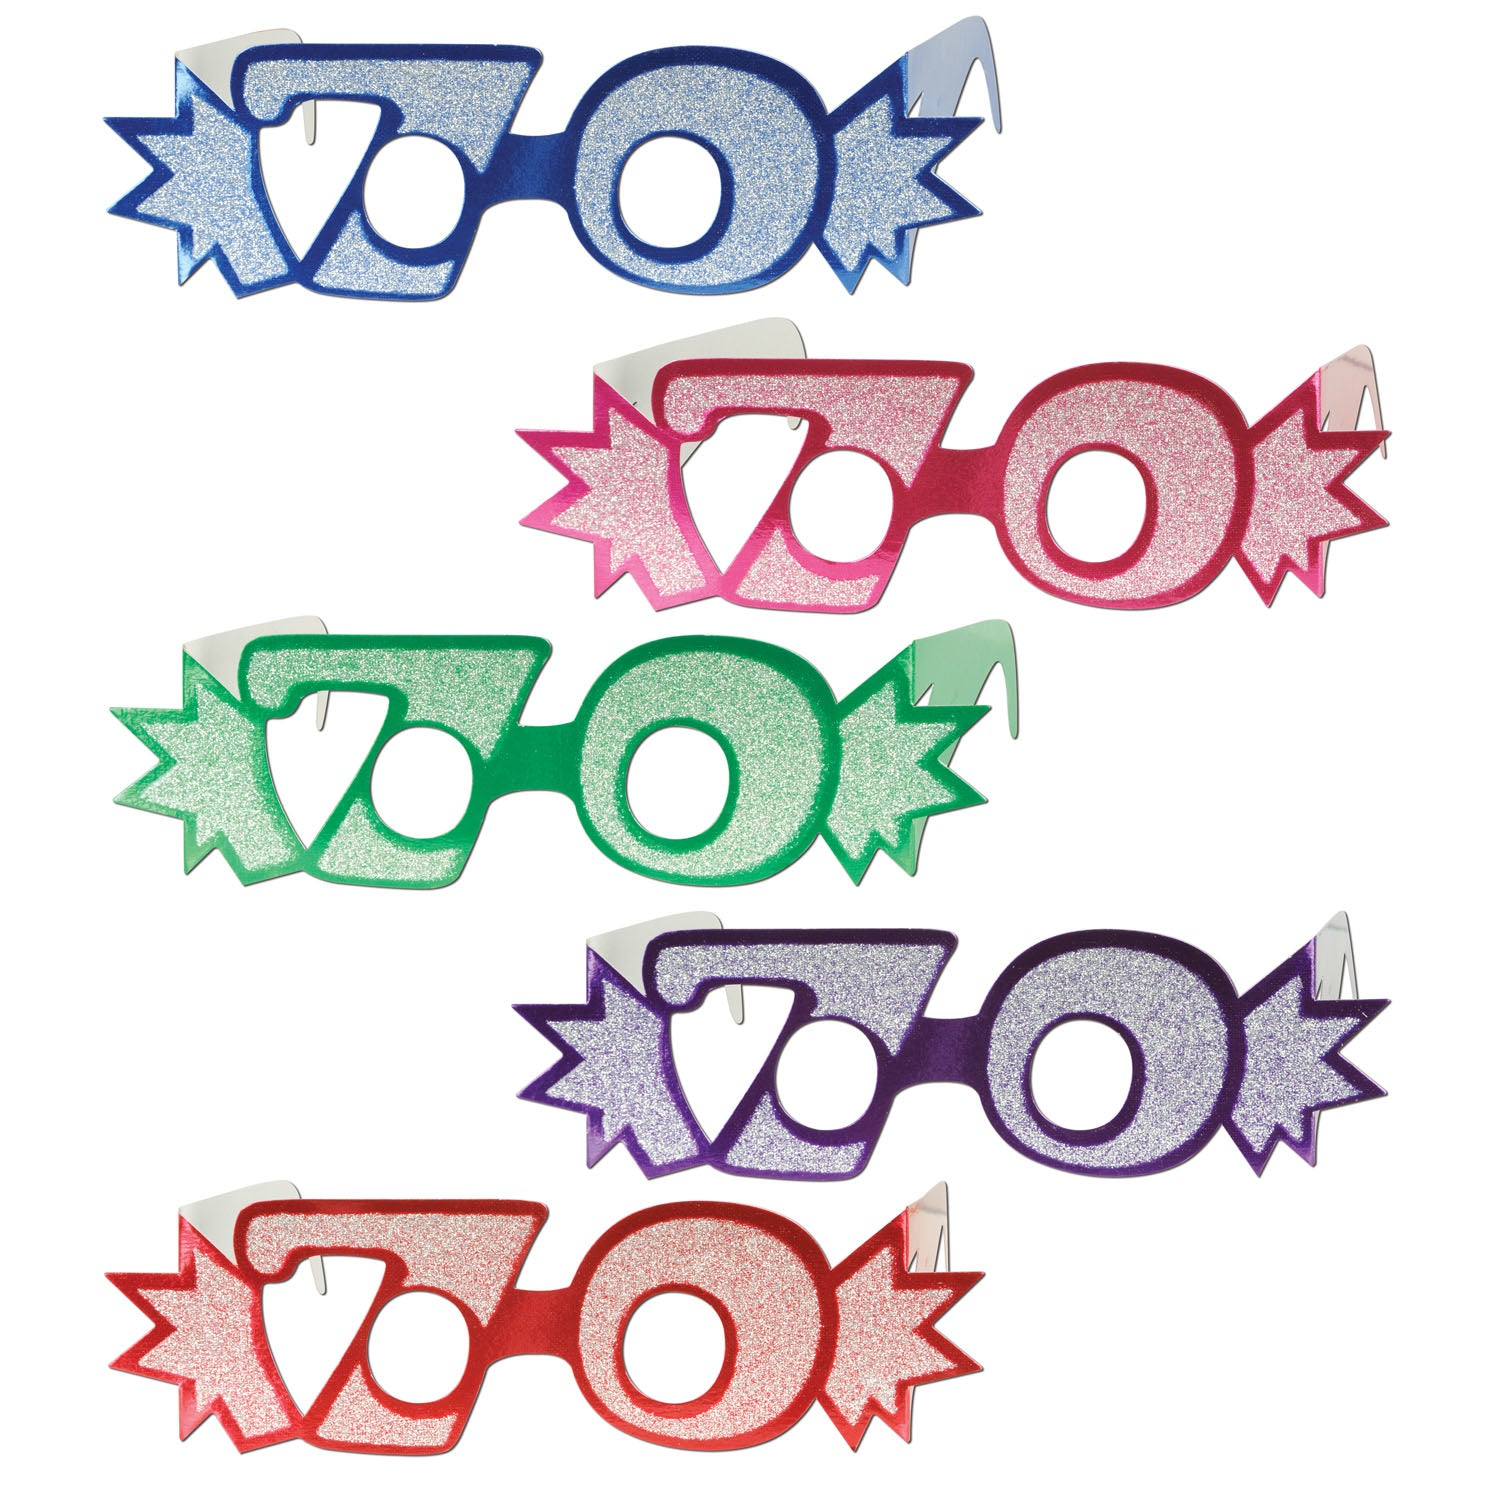 70 Glittered Foil Eyeglasses by Beistle - 70th Birthday Party Decorations